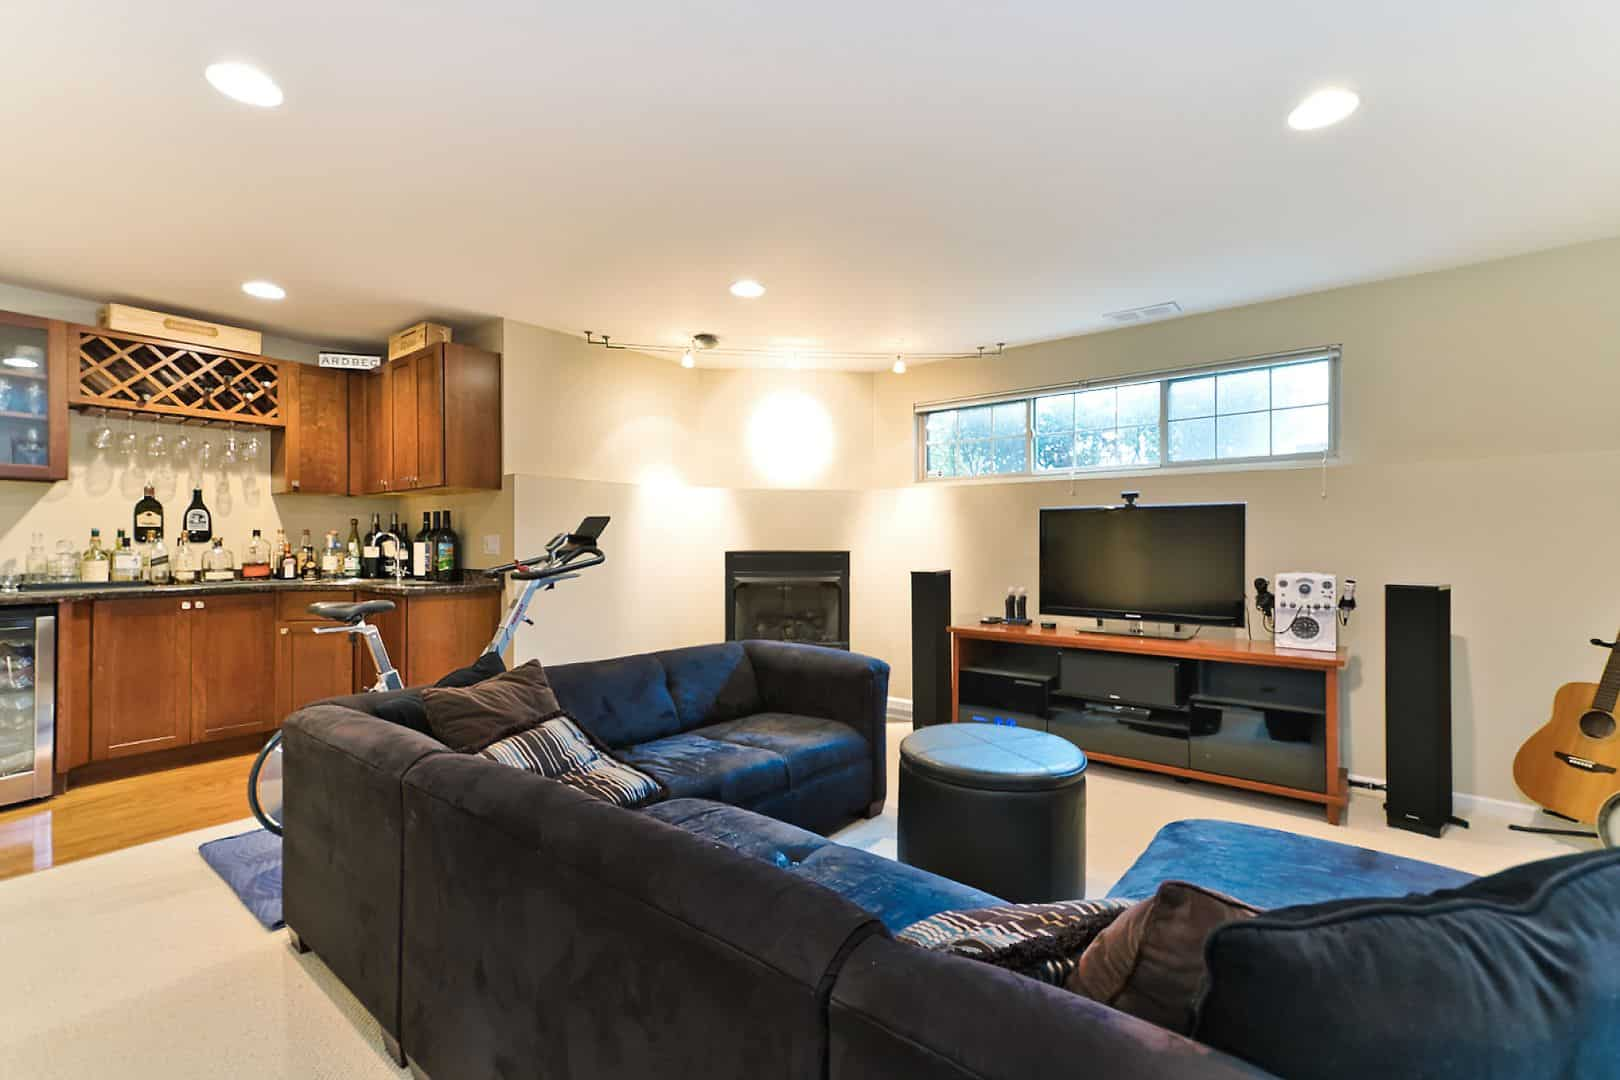 1821 North Talman Ave - West Bucktown Home - Finished Basement